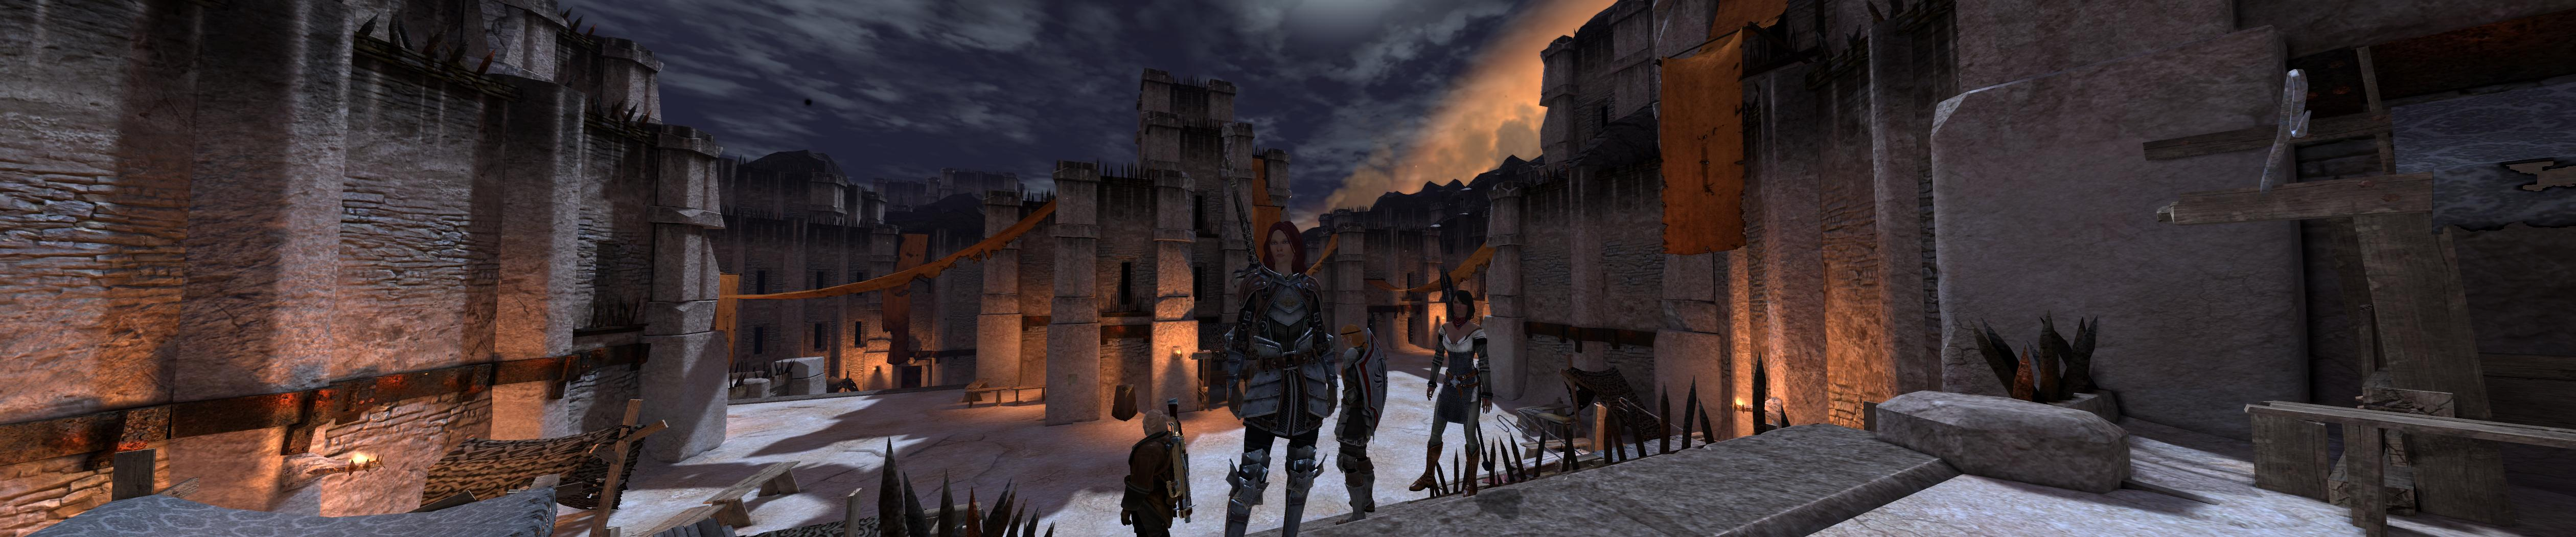 dragonage2-2011-04-13-03-20-57-19